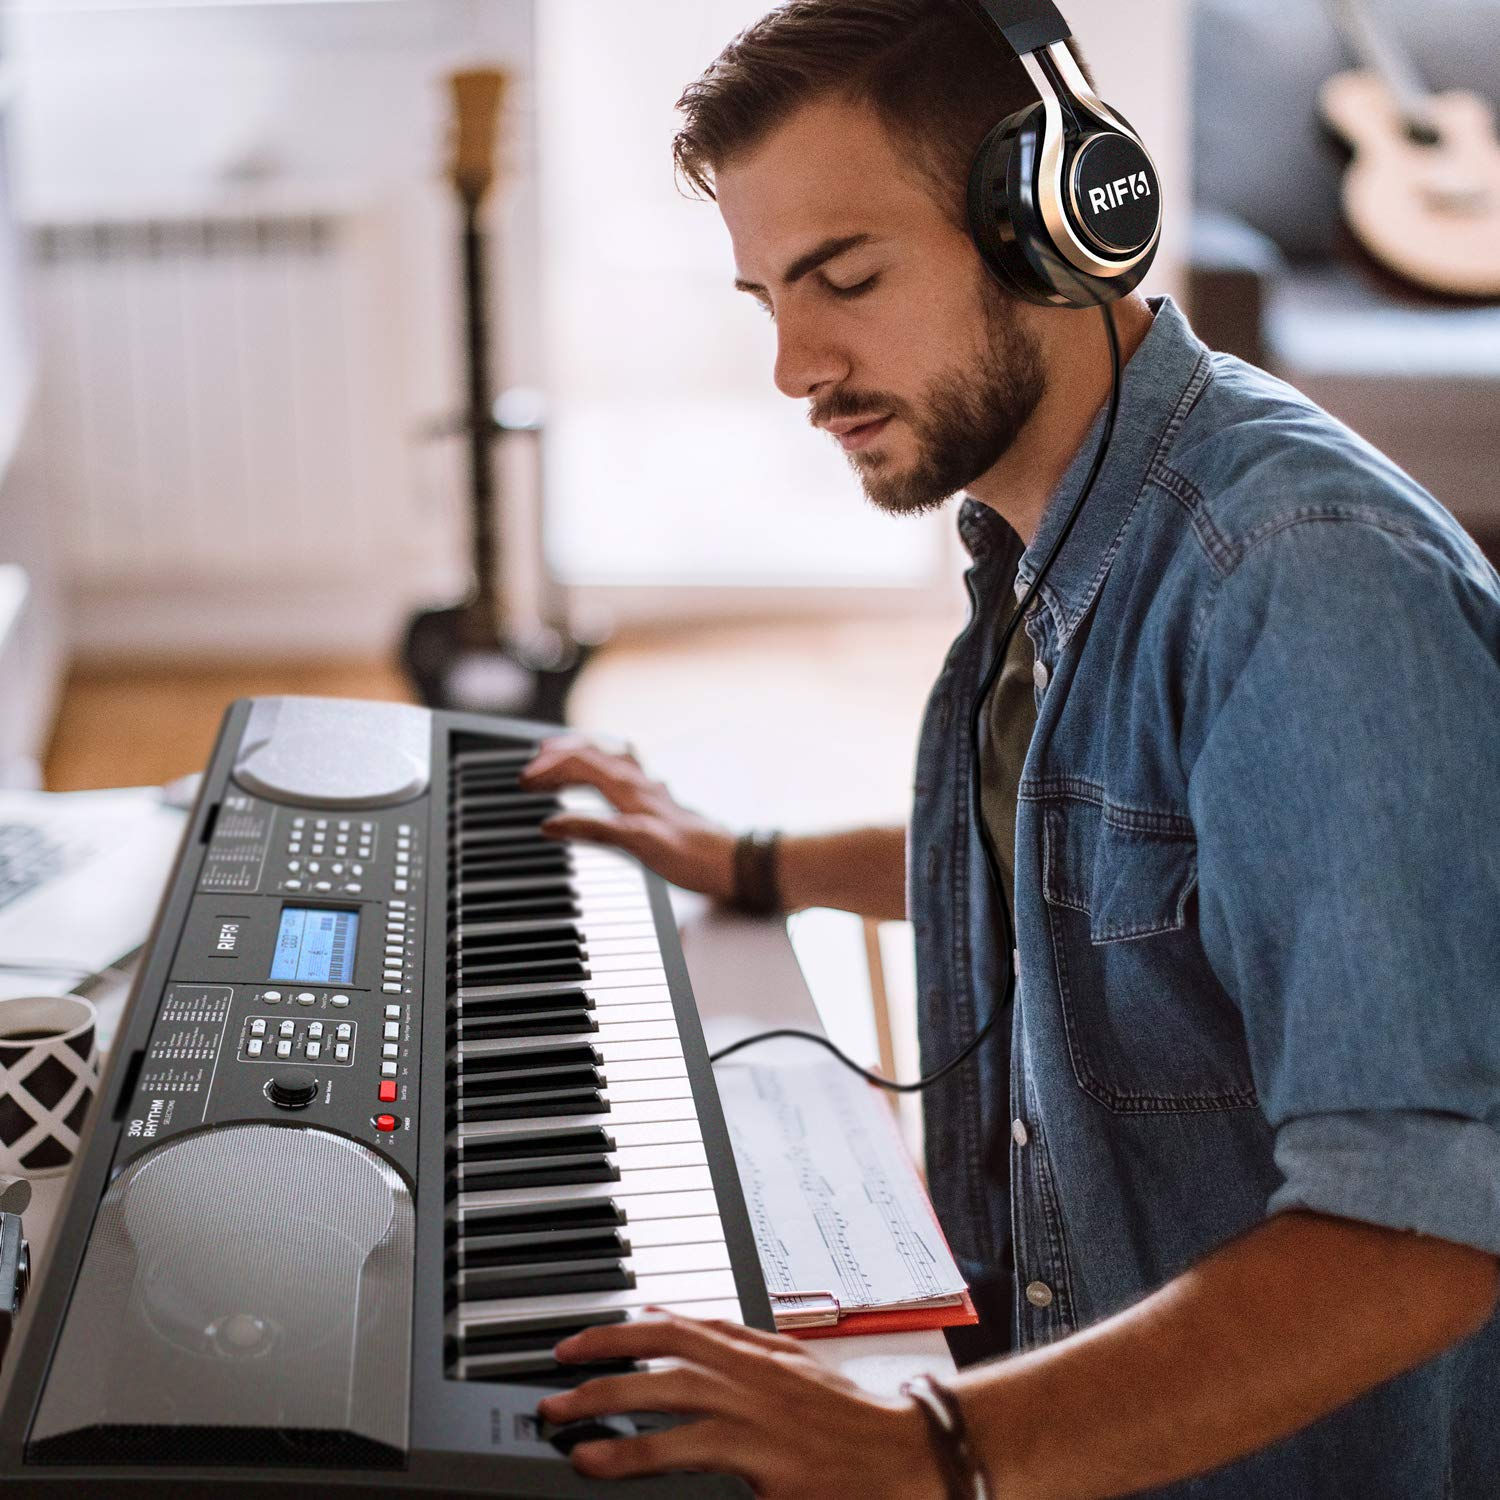 RIF6 Electric 61 Key Piano Keyboard - with Over Ear Headphones, Music Stand, Digital LCD Display, Teaching Modes and Adjustable Stool - Electronic Musical Instruments Starter Set for Kids and Adults by RIF6 (Image #3)